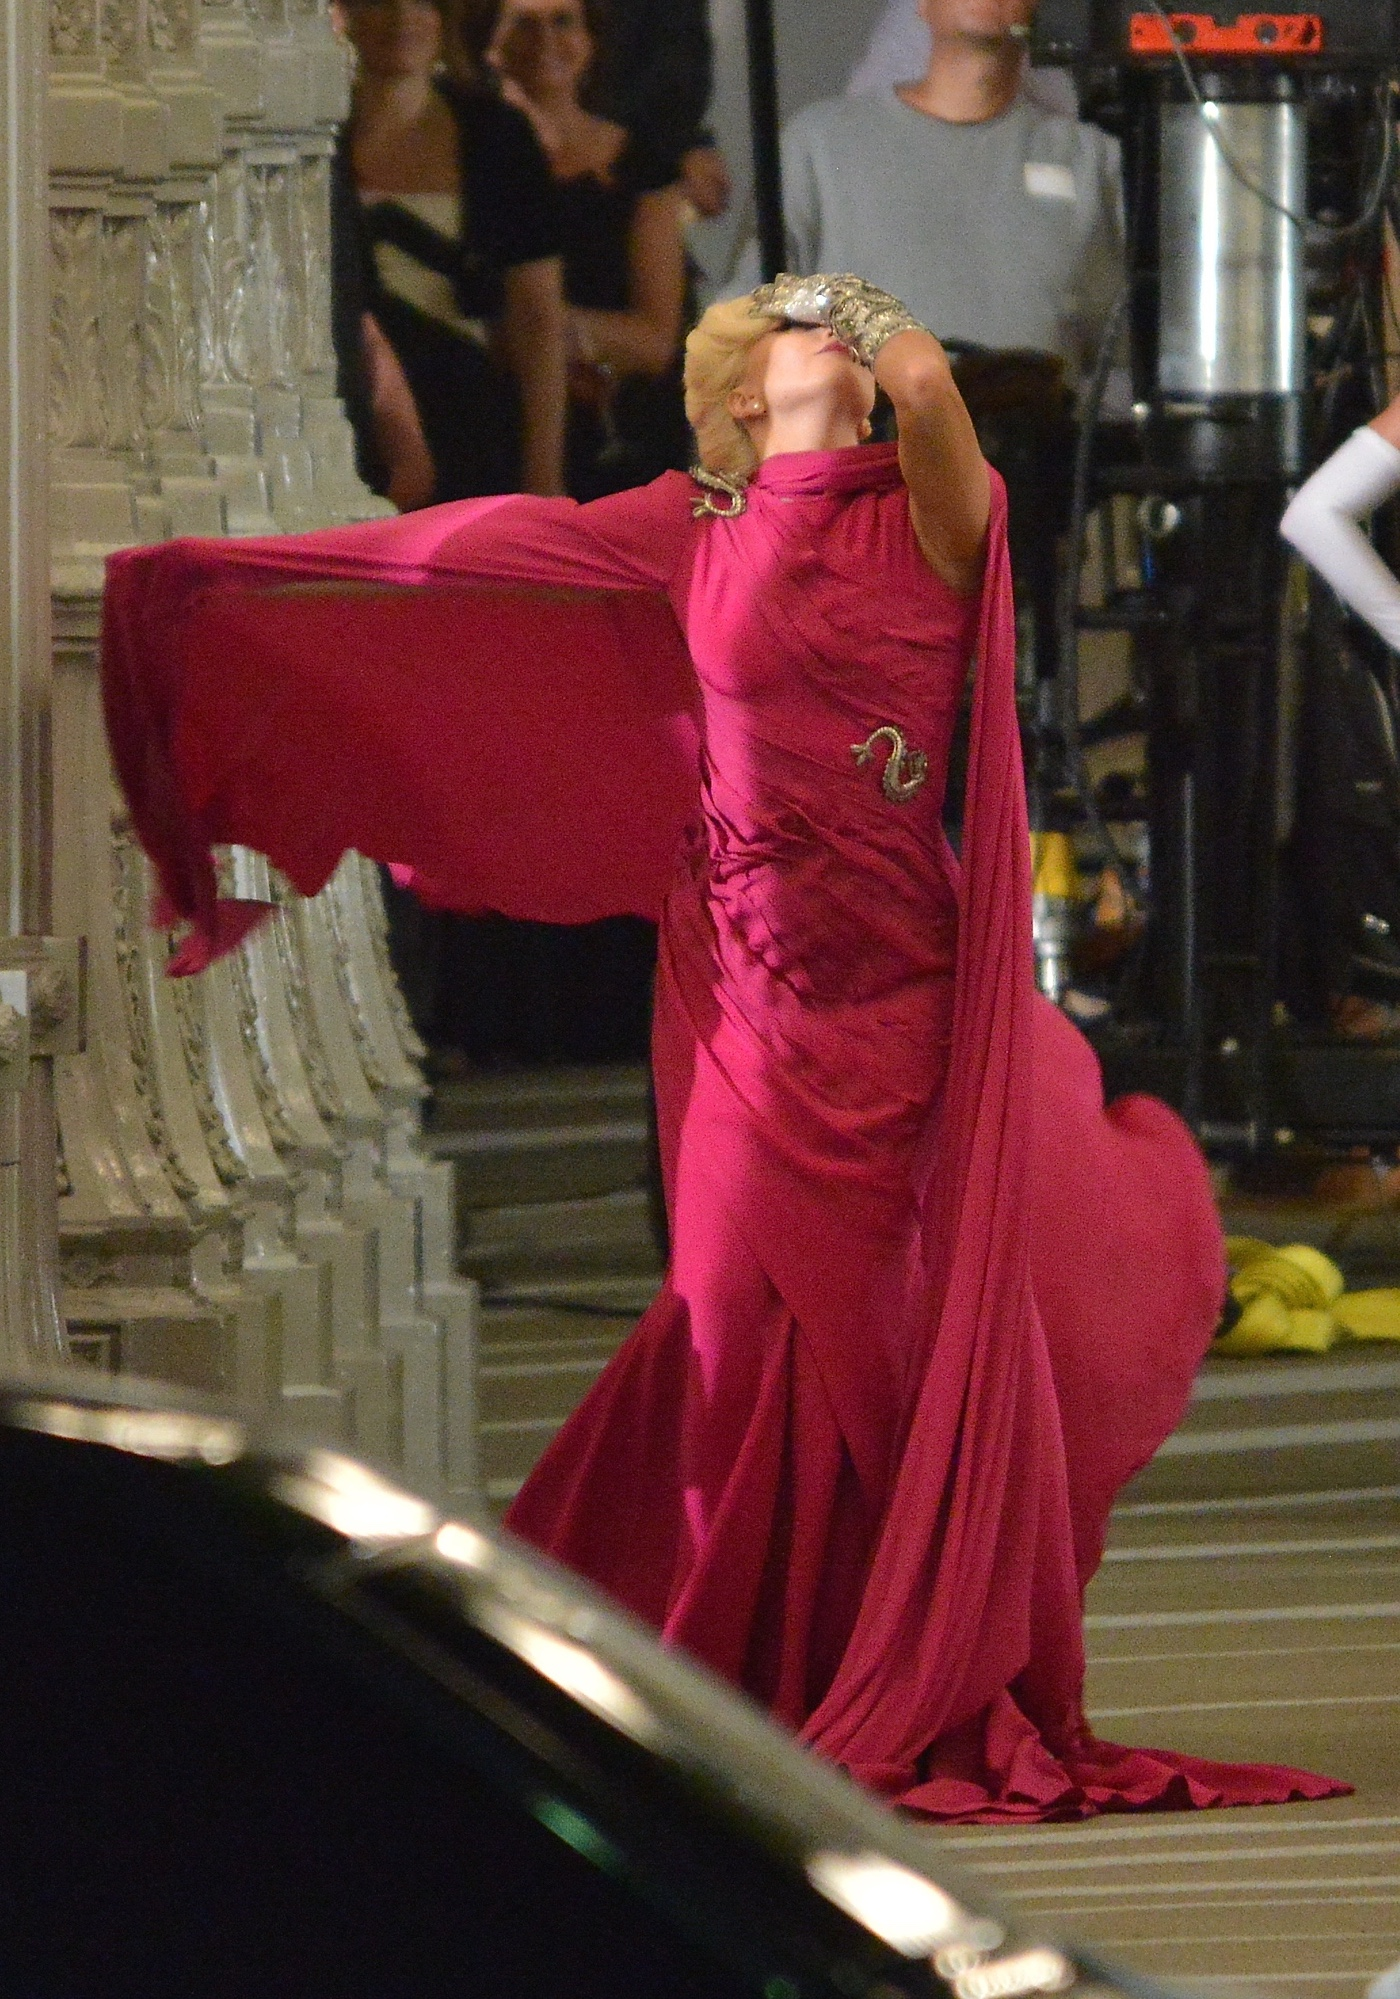 bornthiswayismyanthem: Lady Gaga as The Countess in